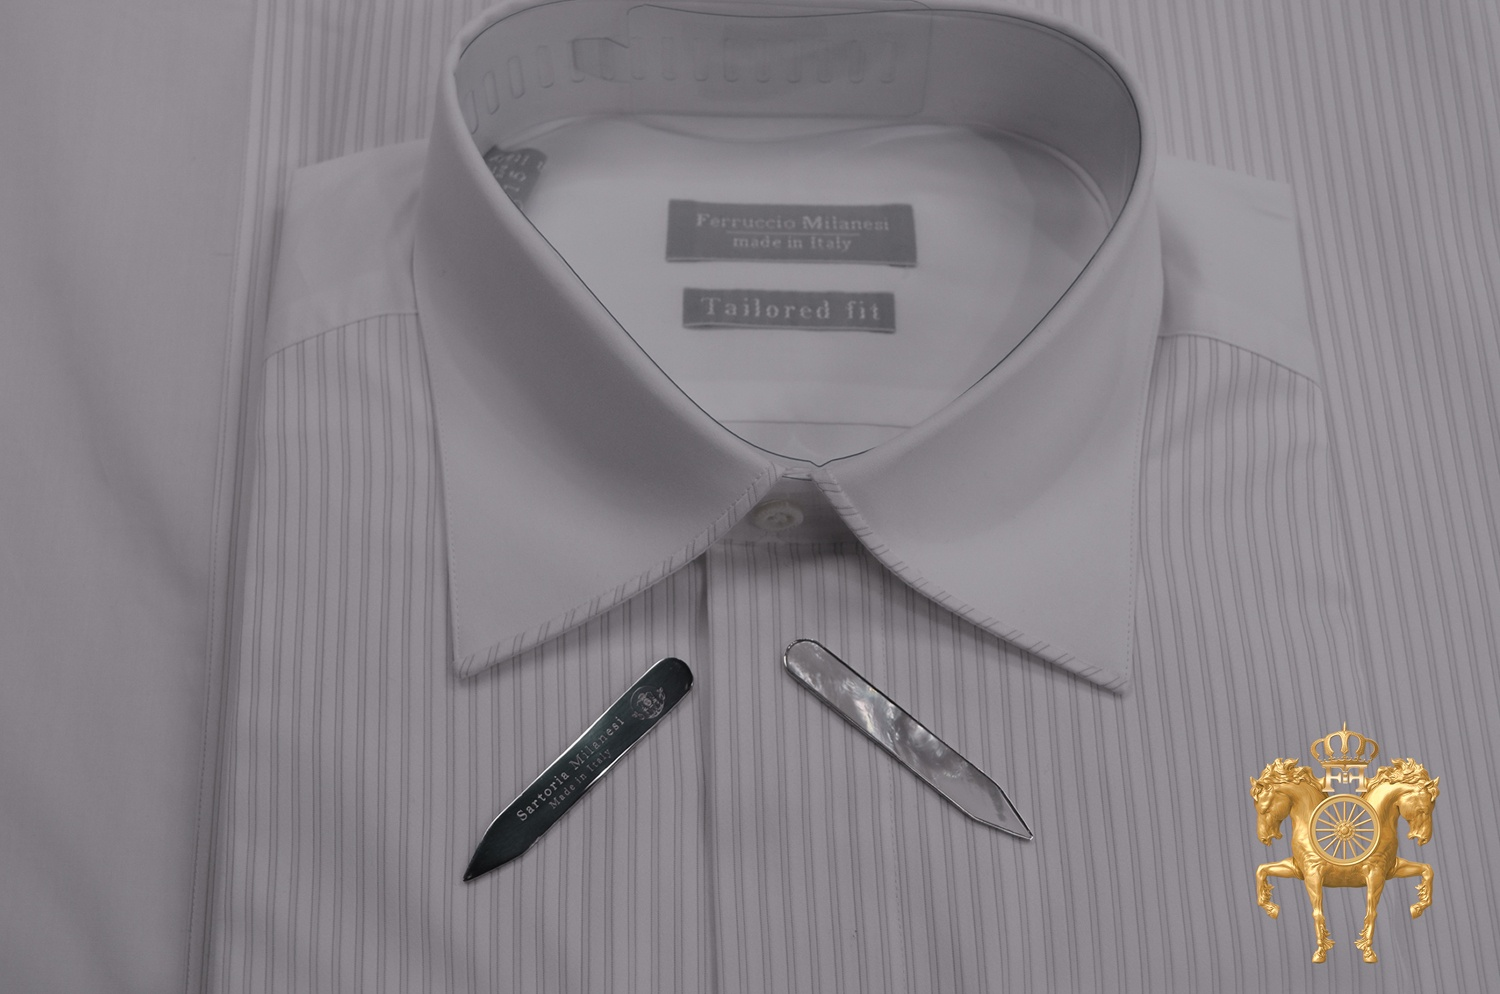 Ferruccio Milanesi Shirt collar stays